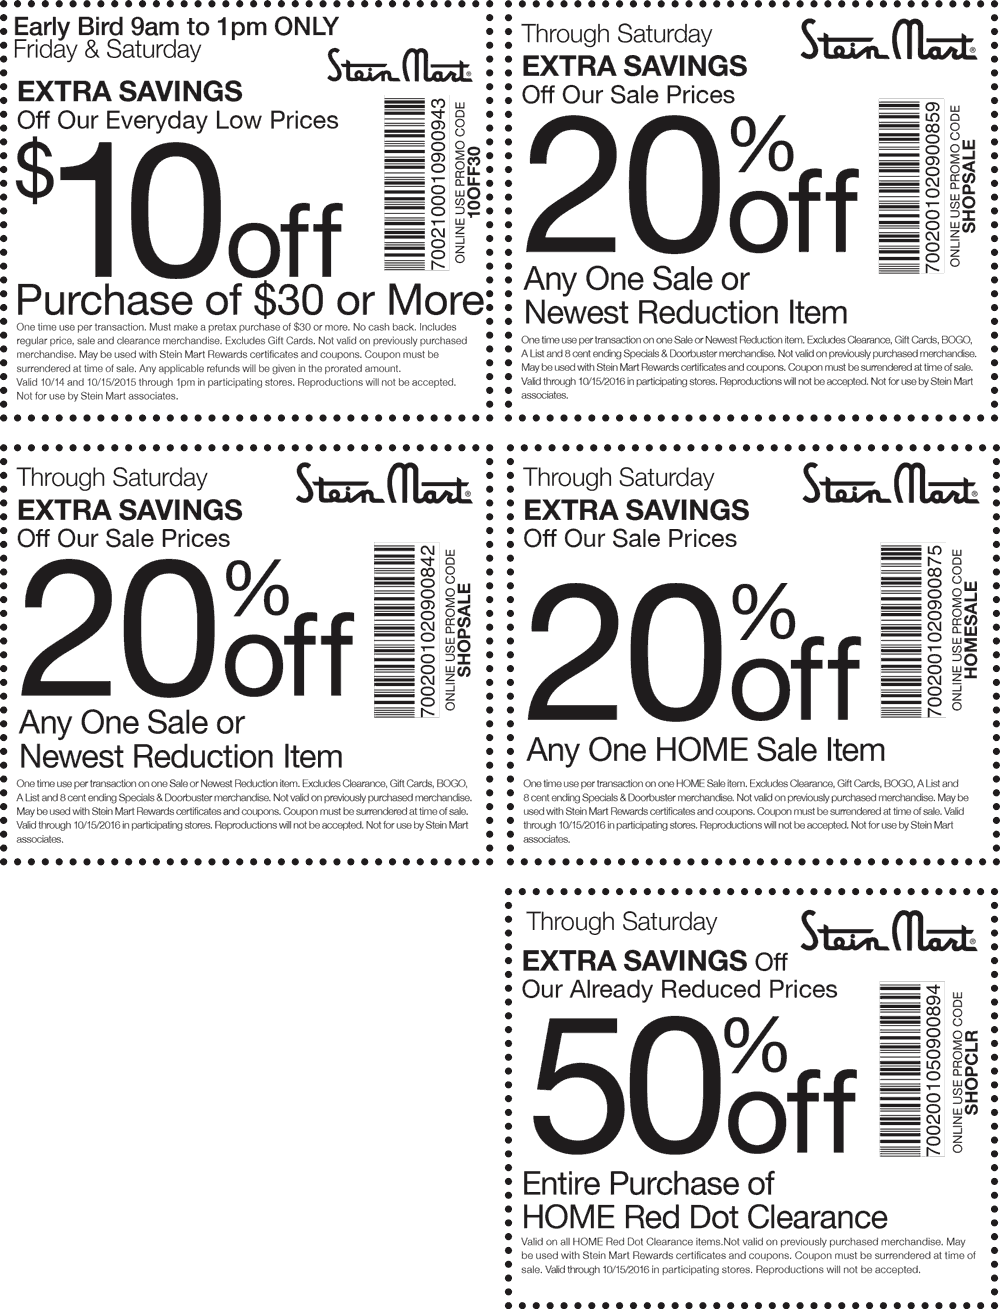 picture about Stein Mart Printable Coupon known as coupon - 40 40 club baseball